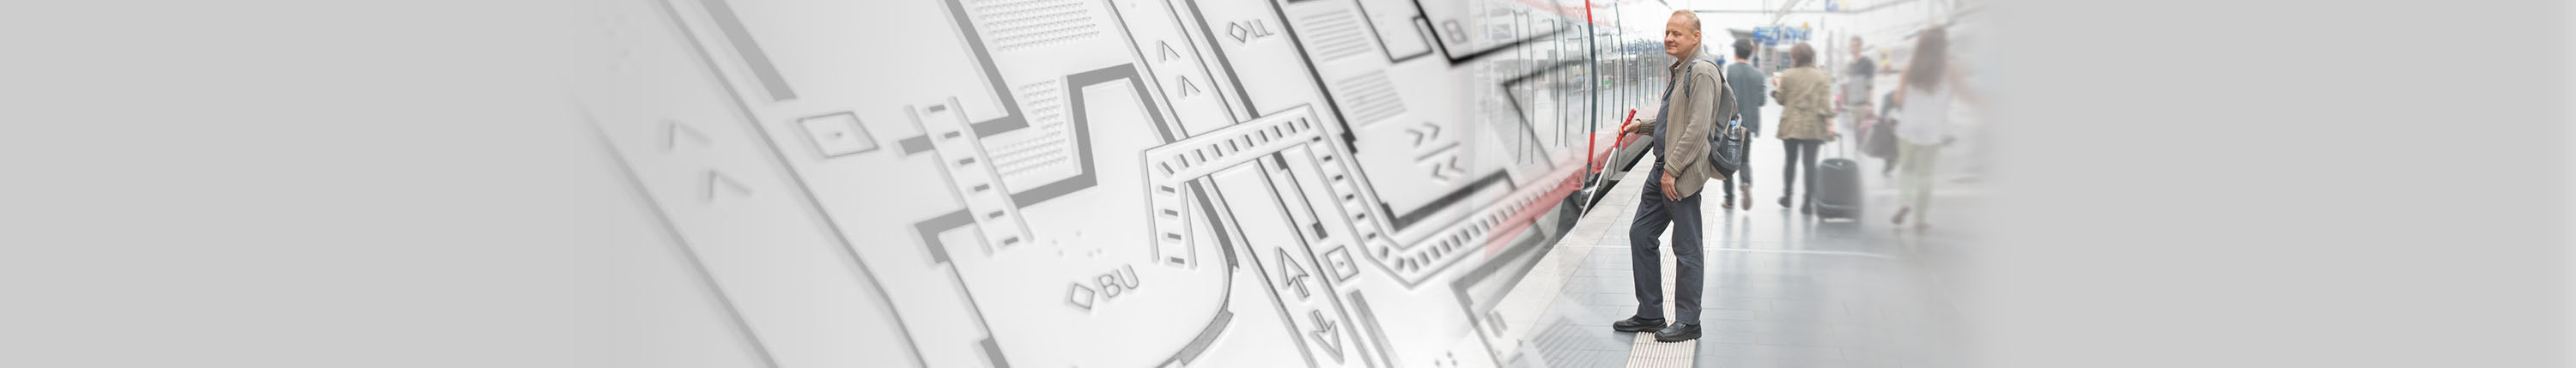 Image of tactile map with attached photo of man with cane standing on subway platform.